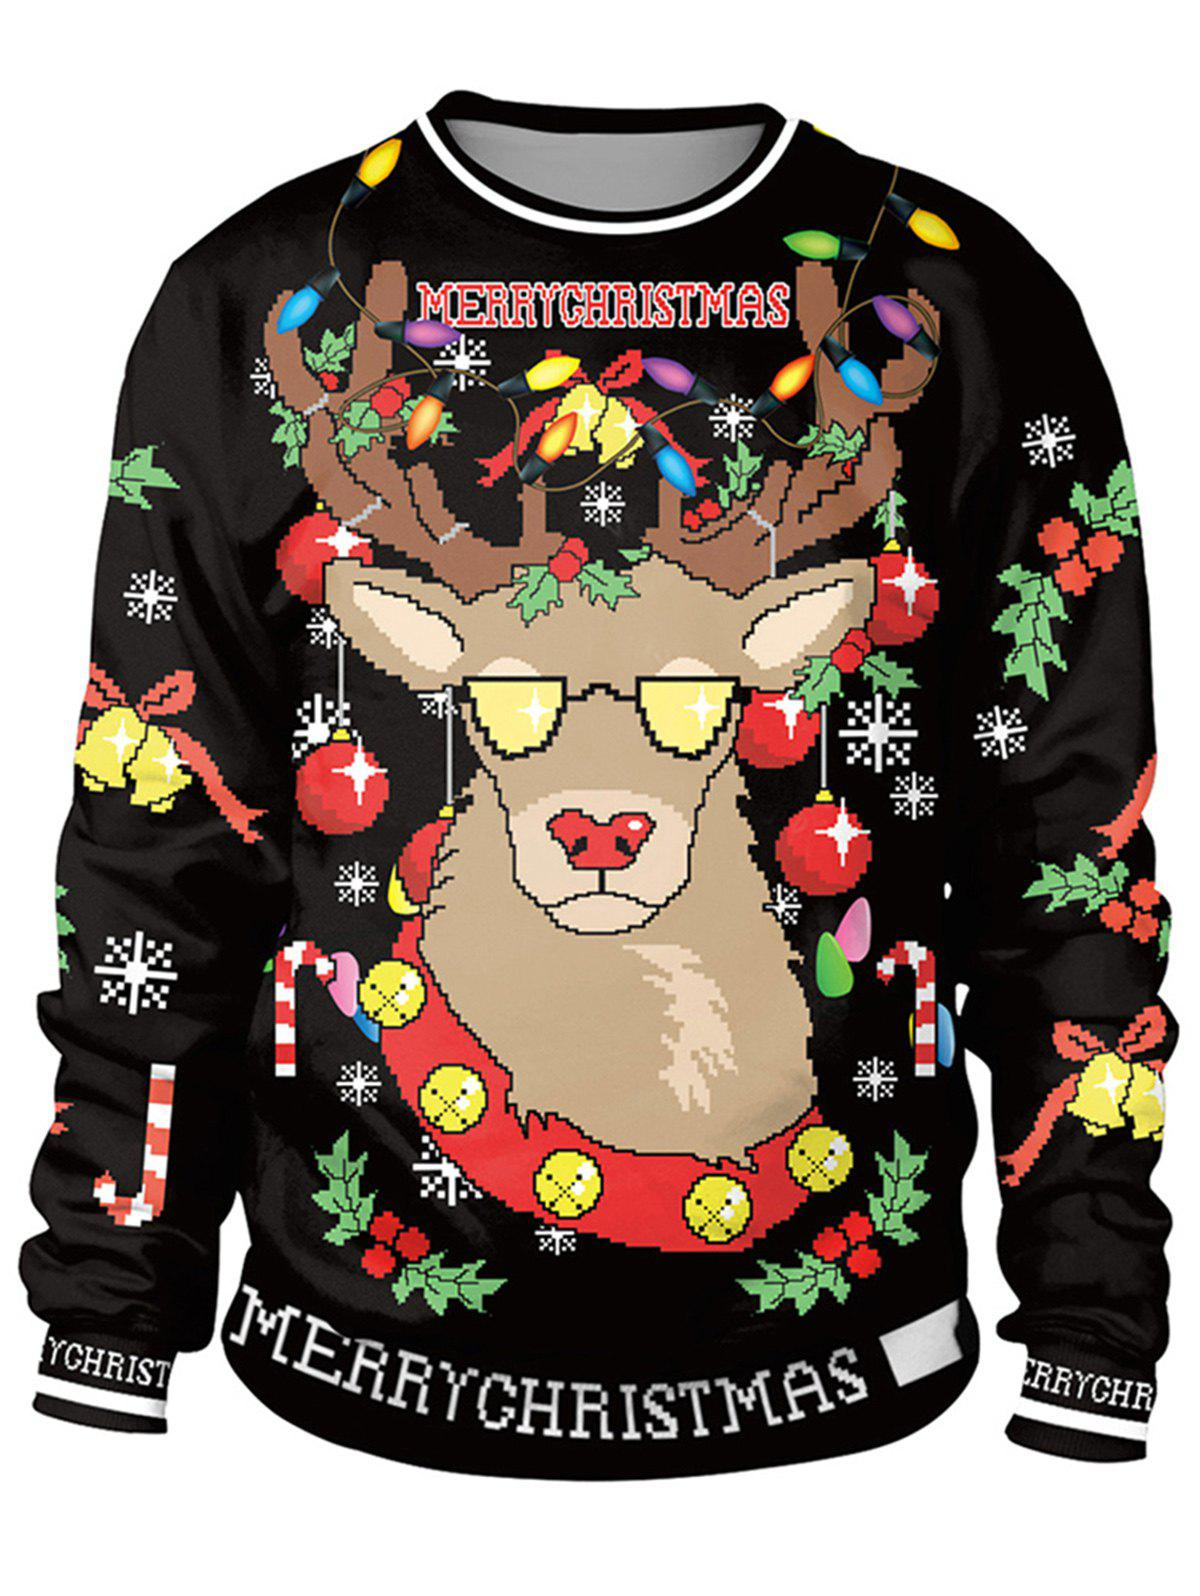 Online Unisex Funny 3D Graphic Print Reindeer Christmas  Sweatshirt for Xmas Party